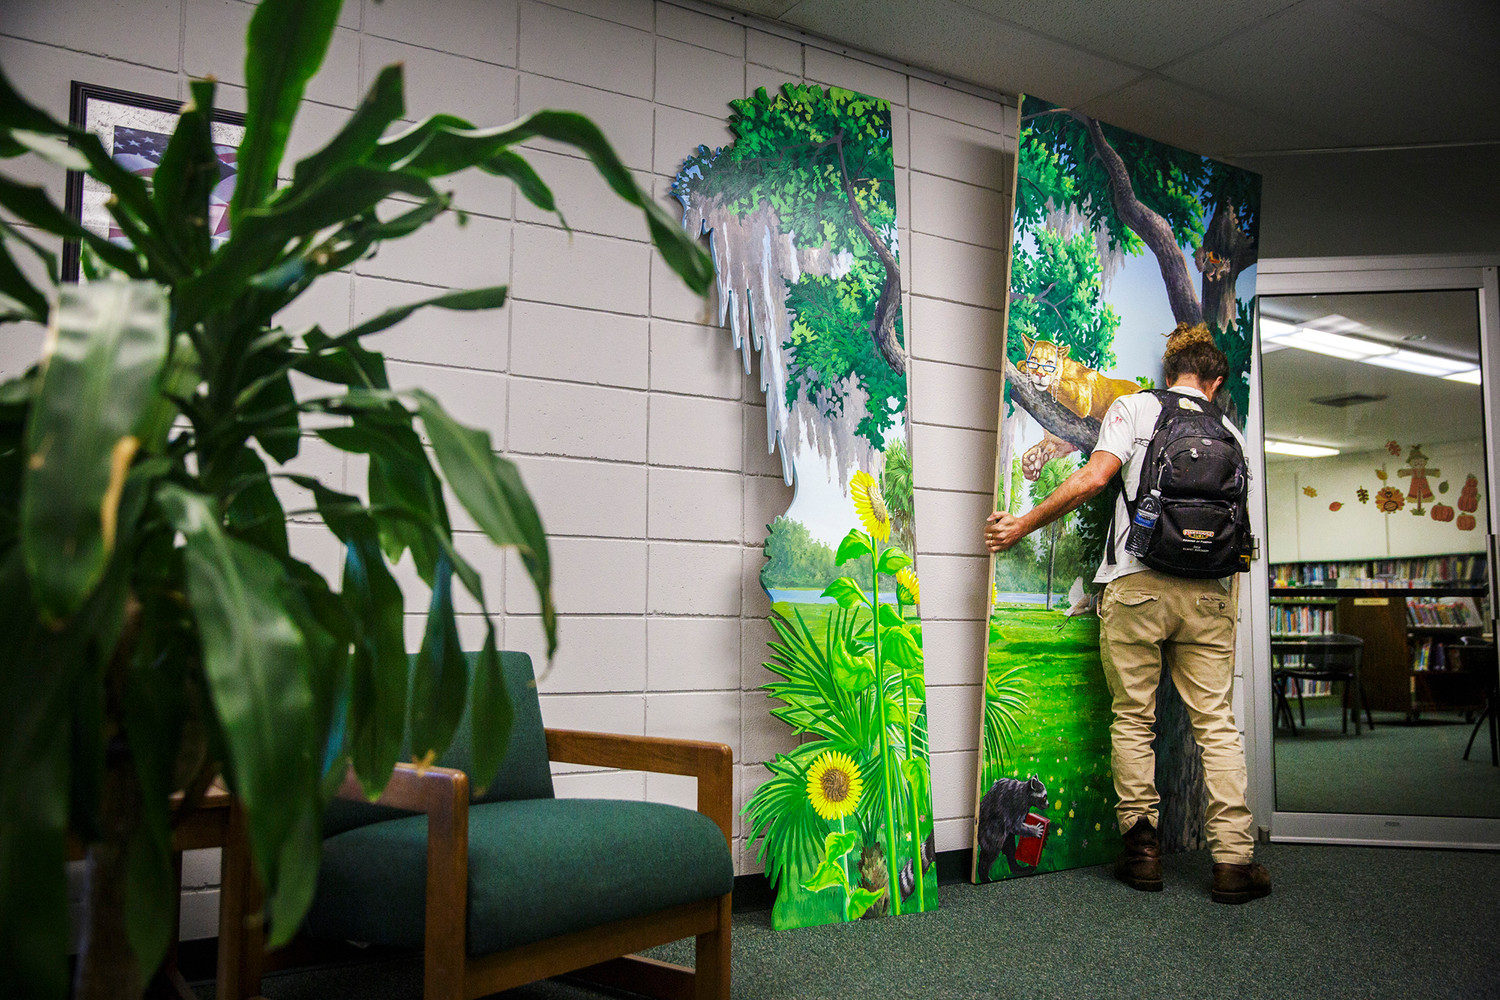 Jacksonville artist Anthony Rooney holds a panel in place while figuring out where to position them on the walls just outside the children's section at the Green Cove Springs Library on Wednesday morning.